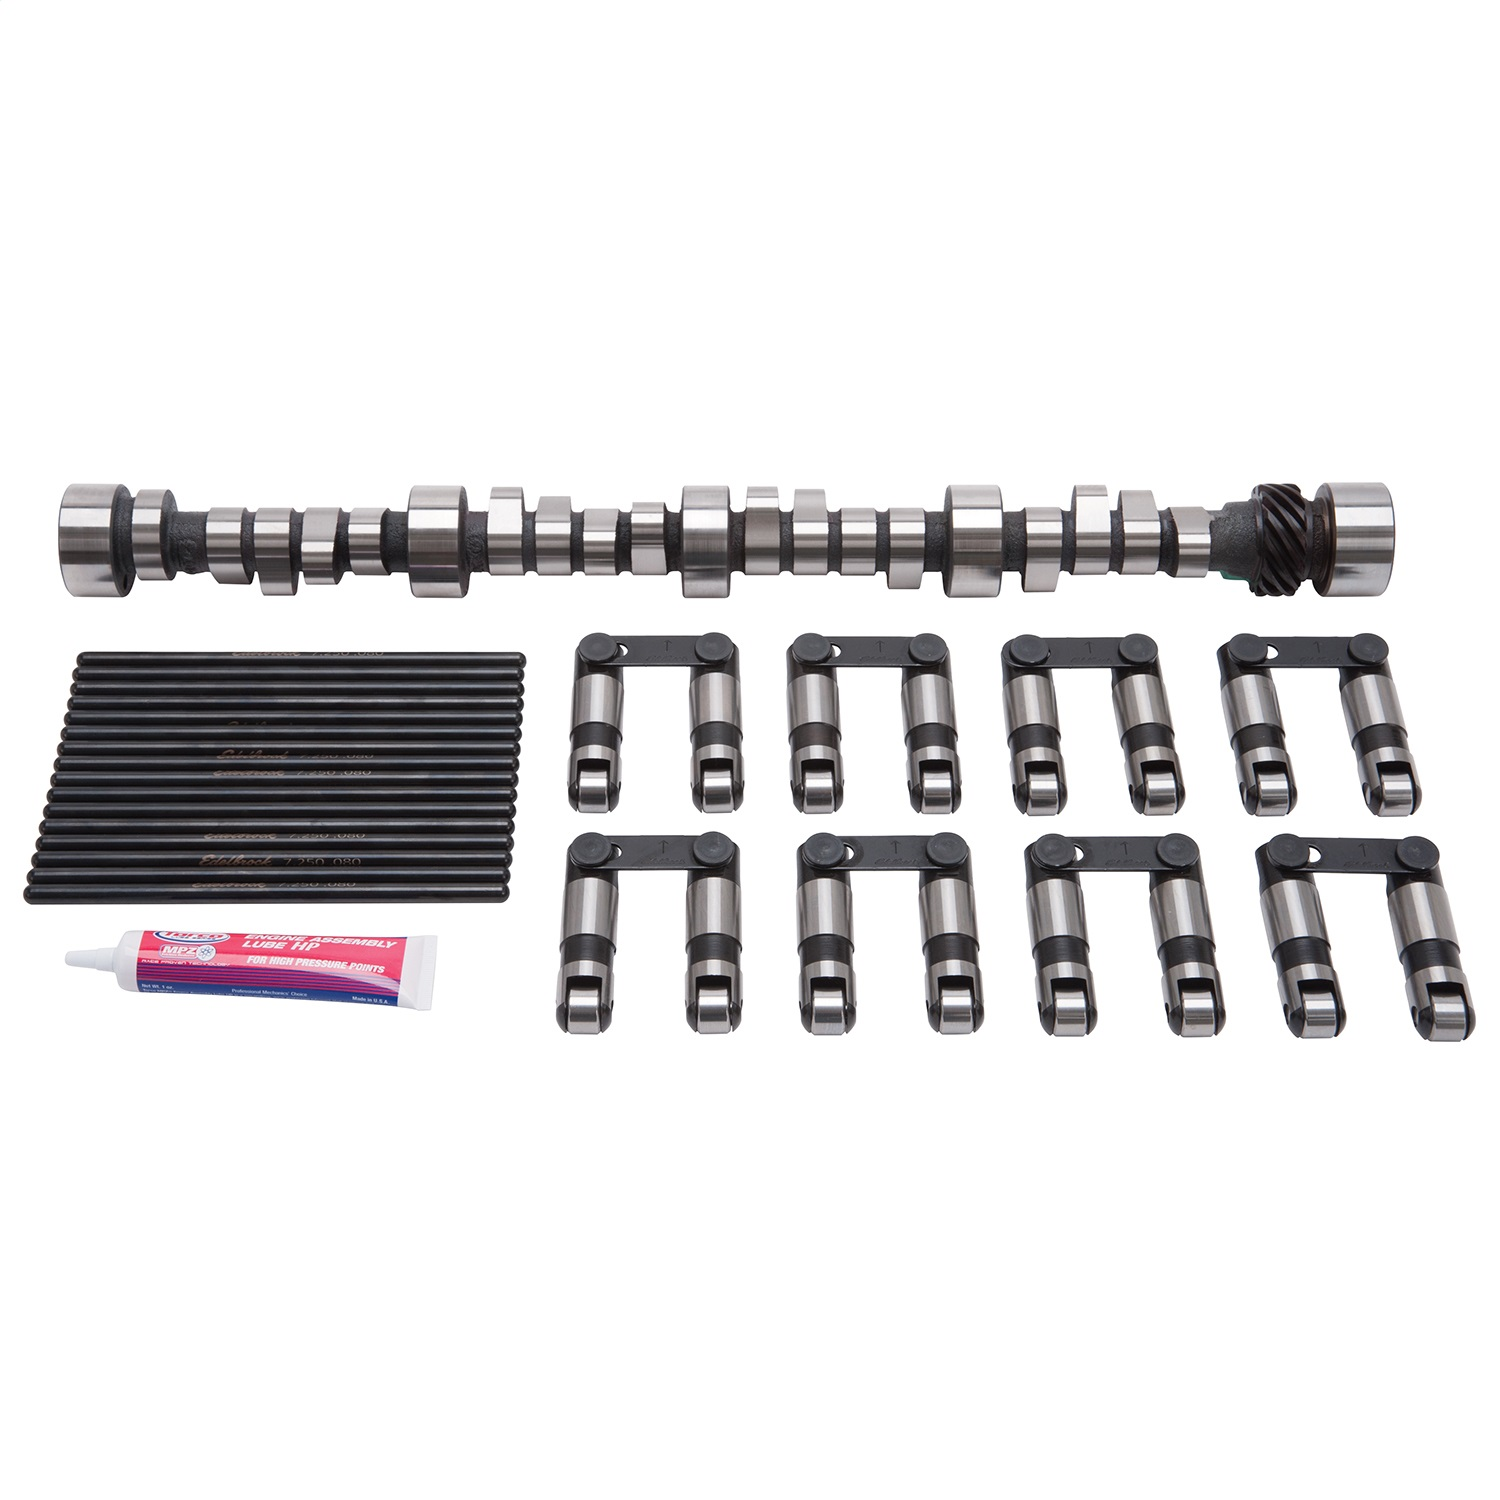 Edelbrock 22015 CAM/LIFTER/PUSHROD KIT PERF RPM HYD ROLLER SBC 1957-86